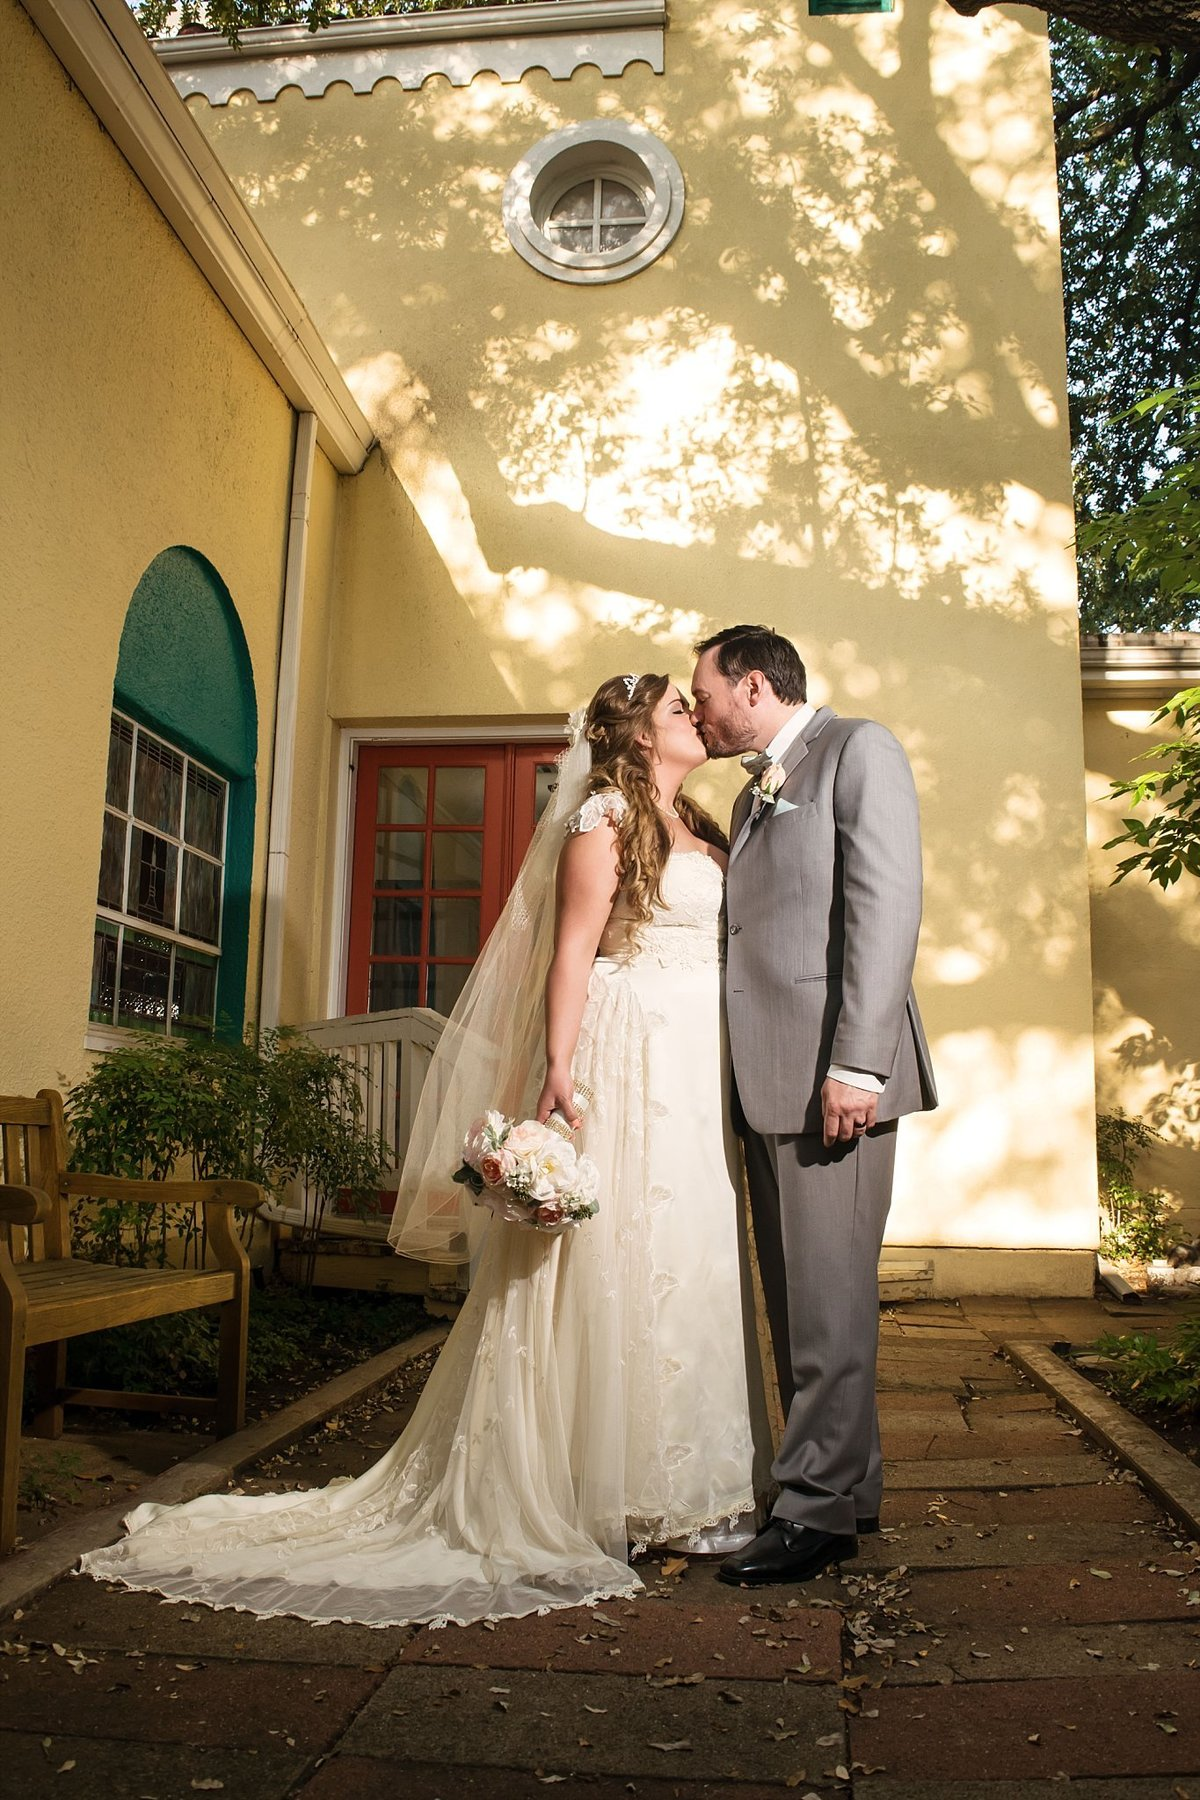 Wedding Photographer - Gallery 2 - M3 Creative_0383